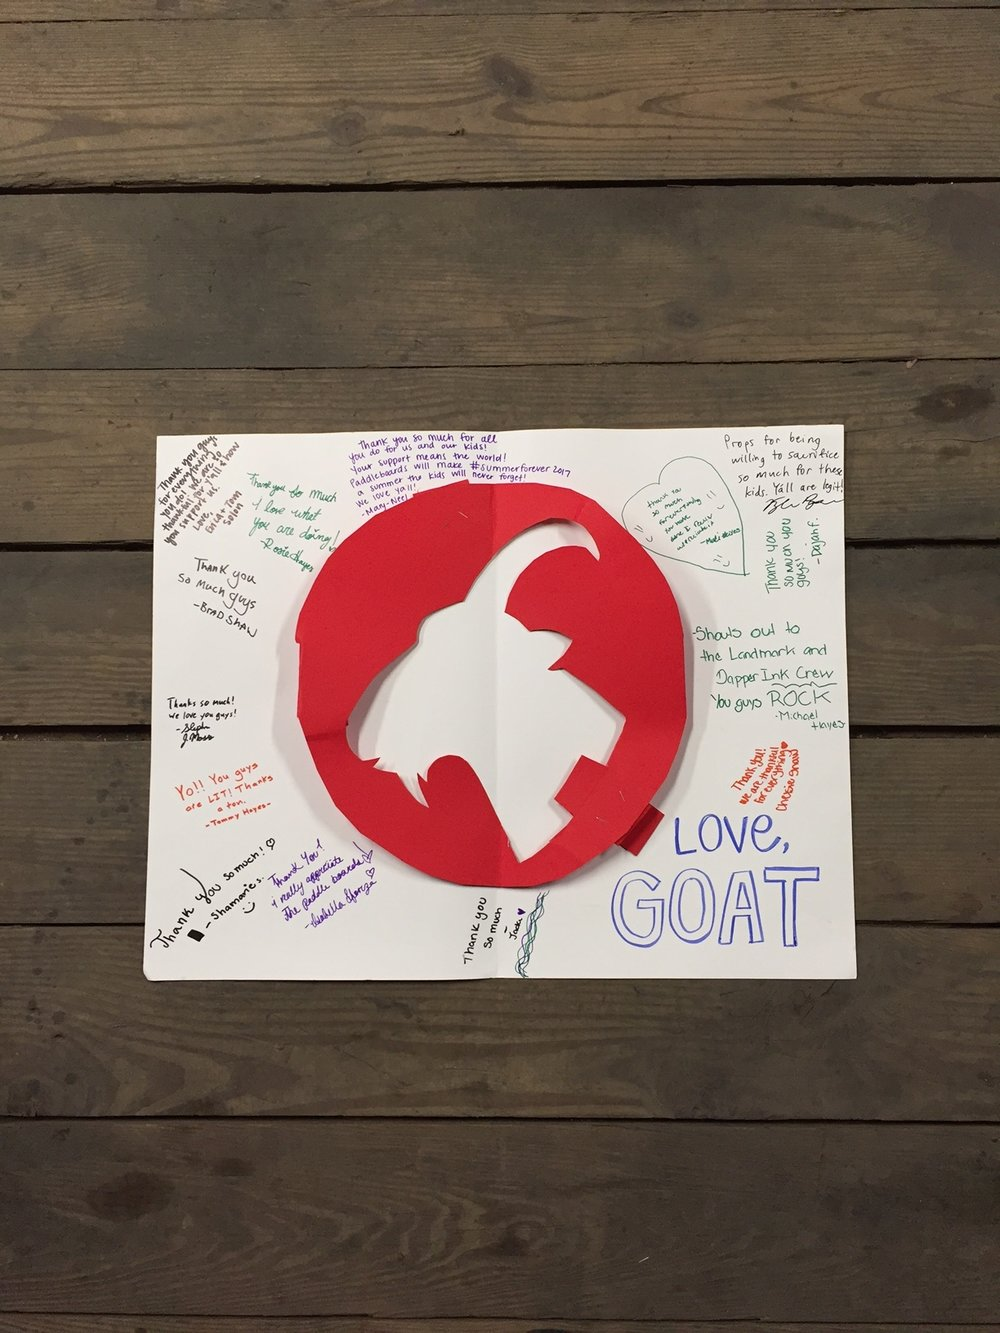 We absolutely loved receiving this super creative thank you note from our buddies at G.O.A.T.!